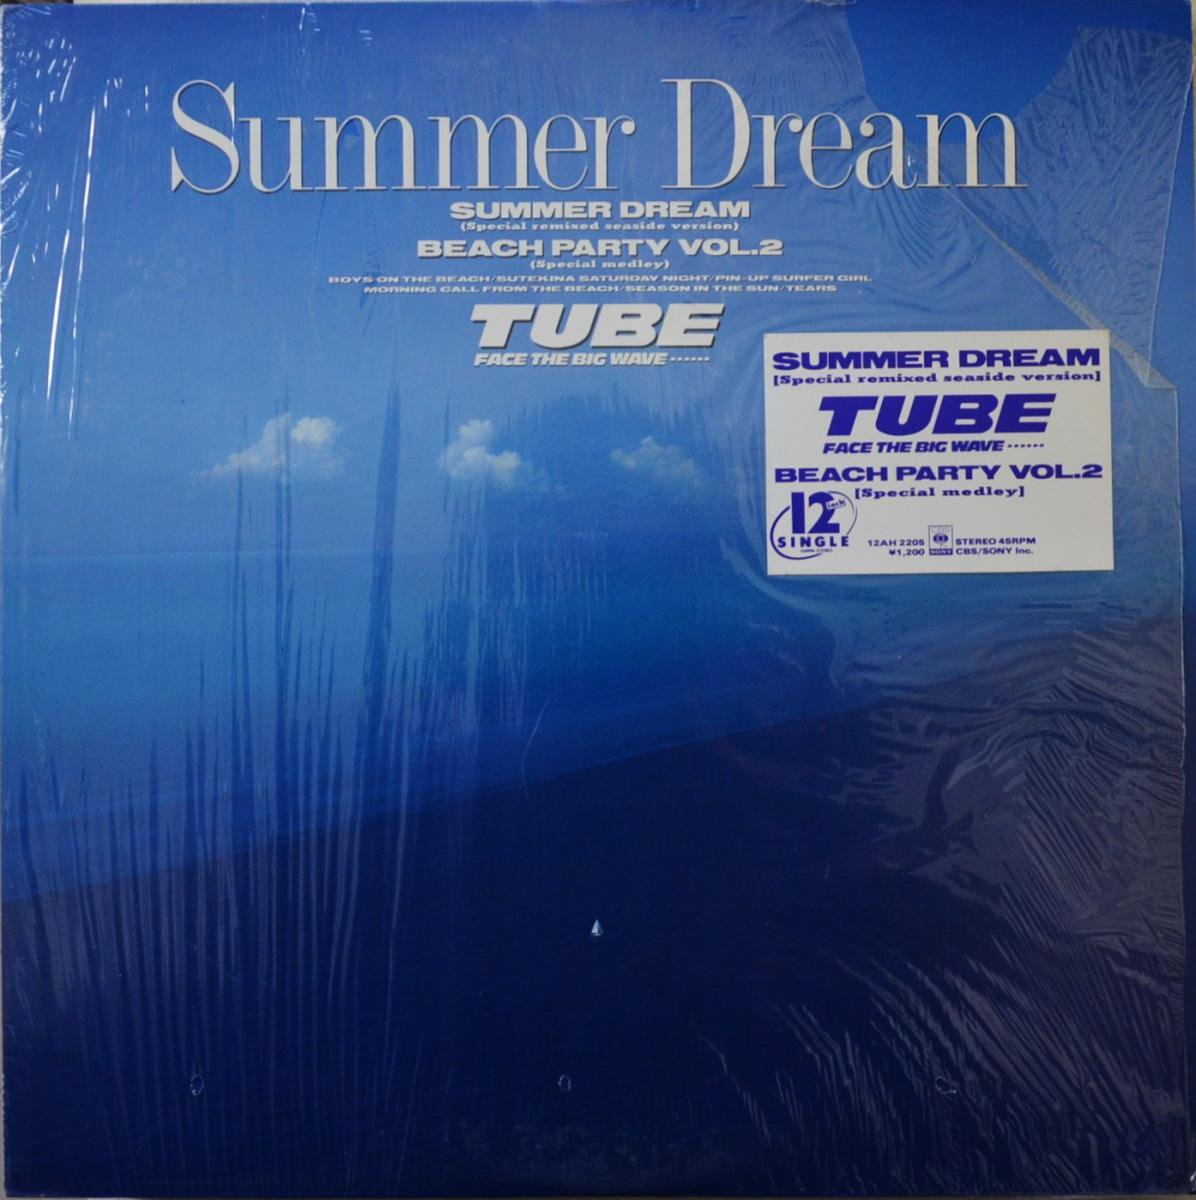 チューブ TUBE / サマードリーム SUMMER DREAM - SPECIAL REMIXED SEASIDE VERSION (12